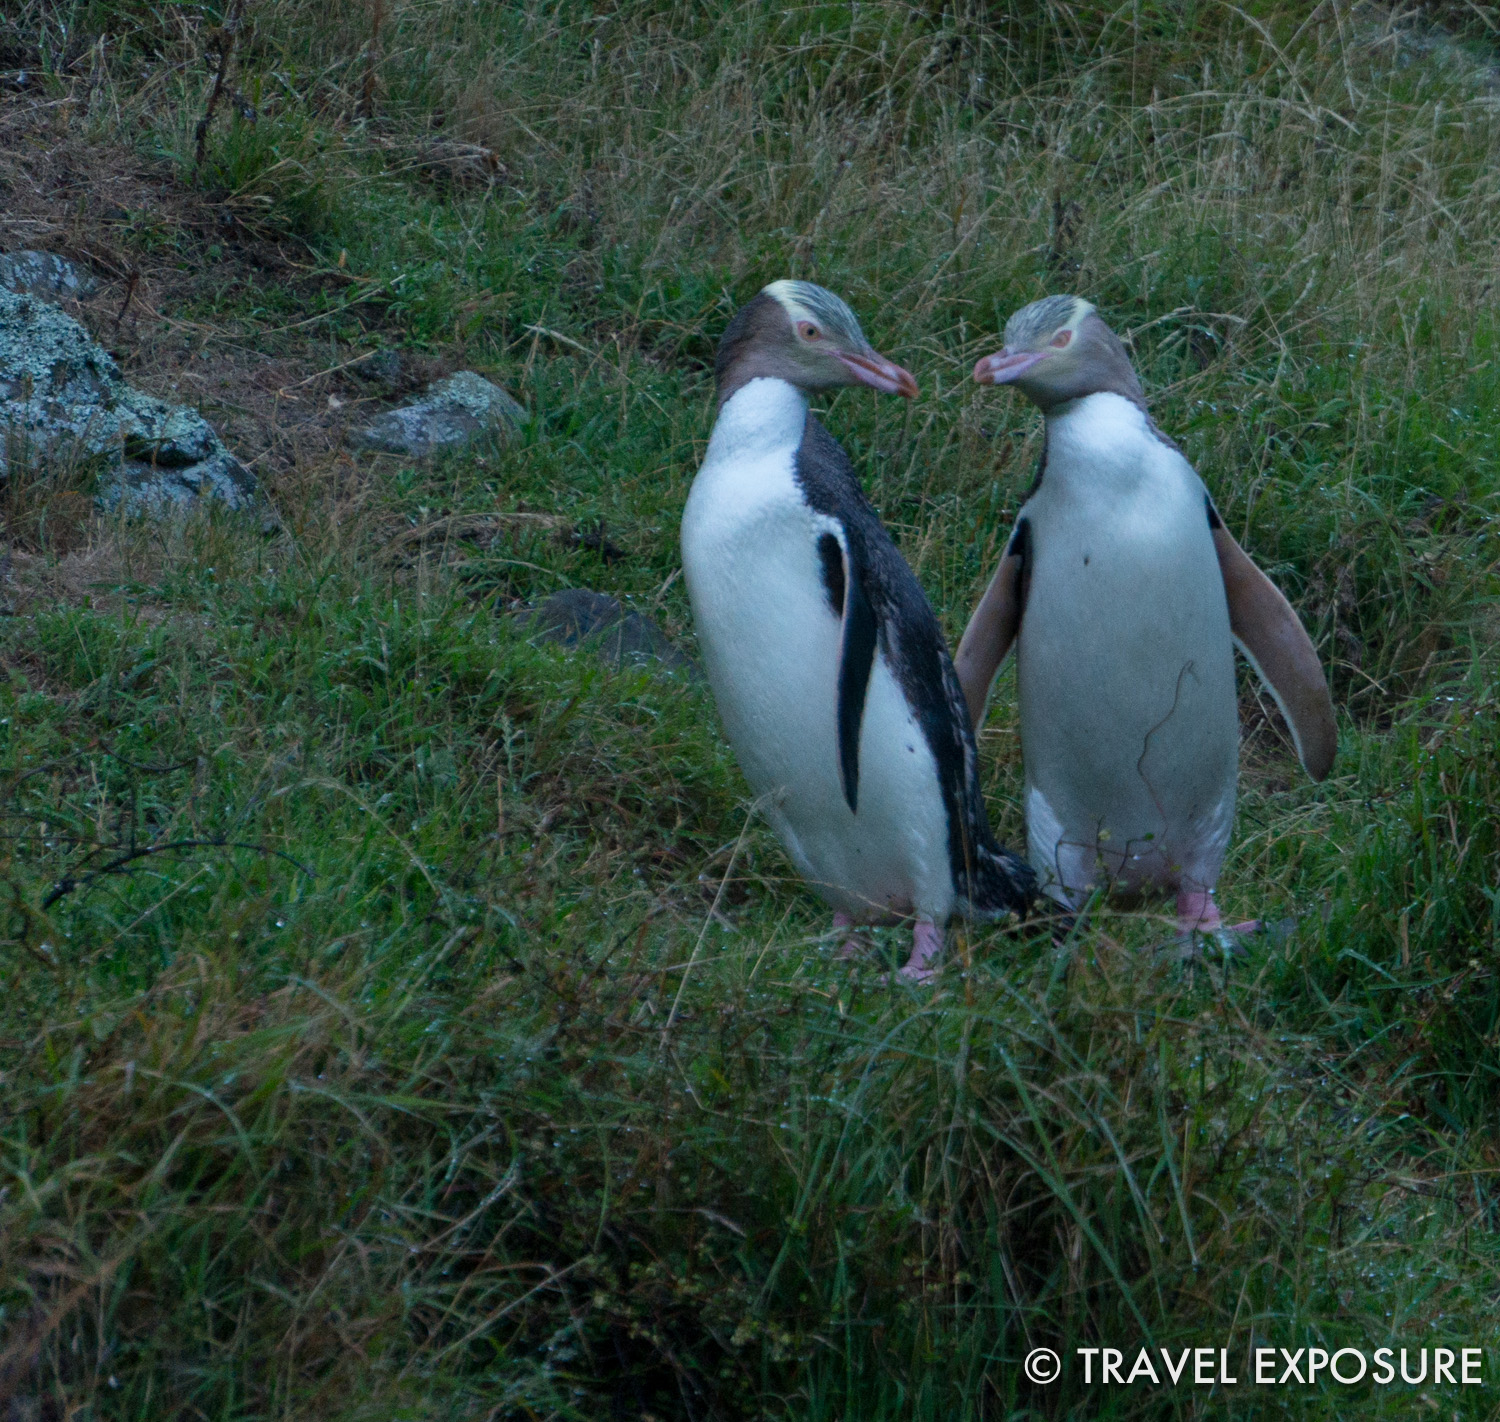 Penguins in New Zealand